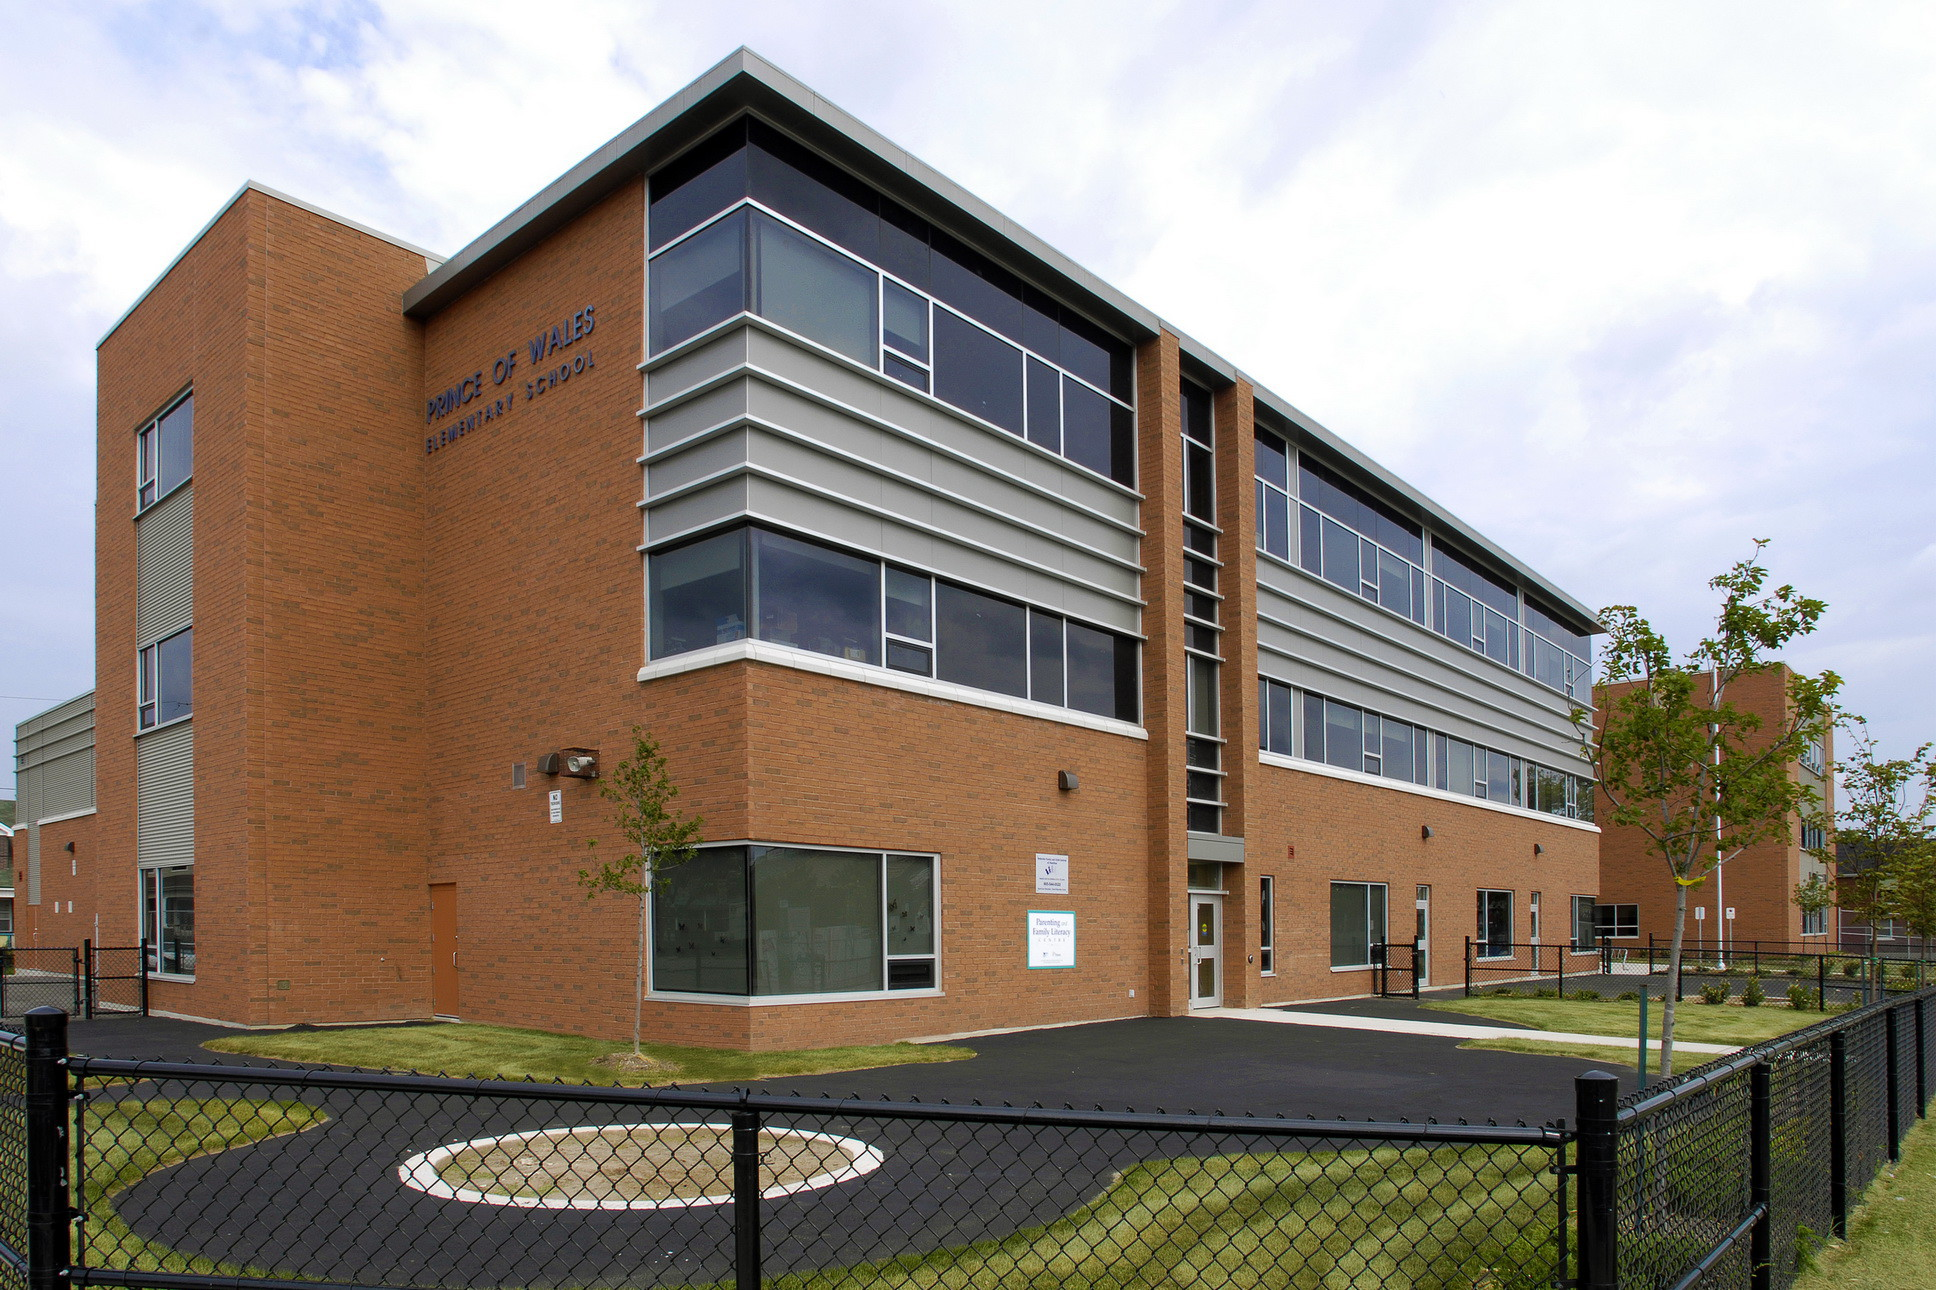 Red brick three storey school with windows and steel detail with fenced play area